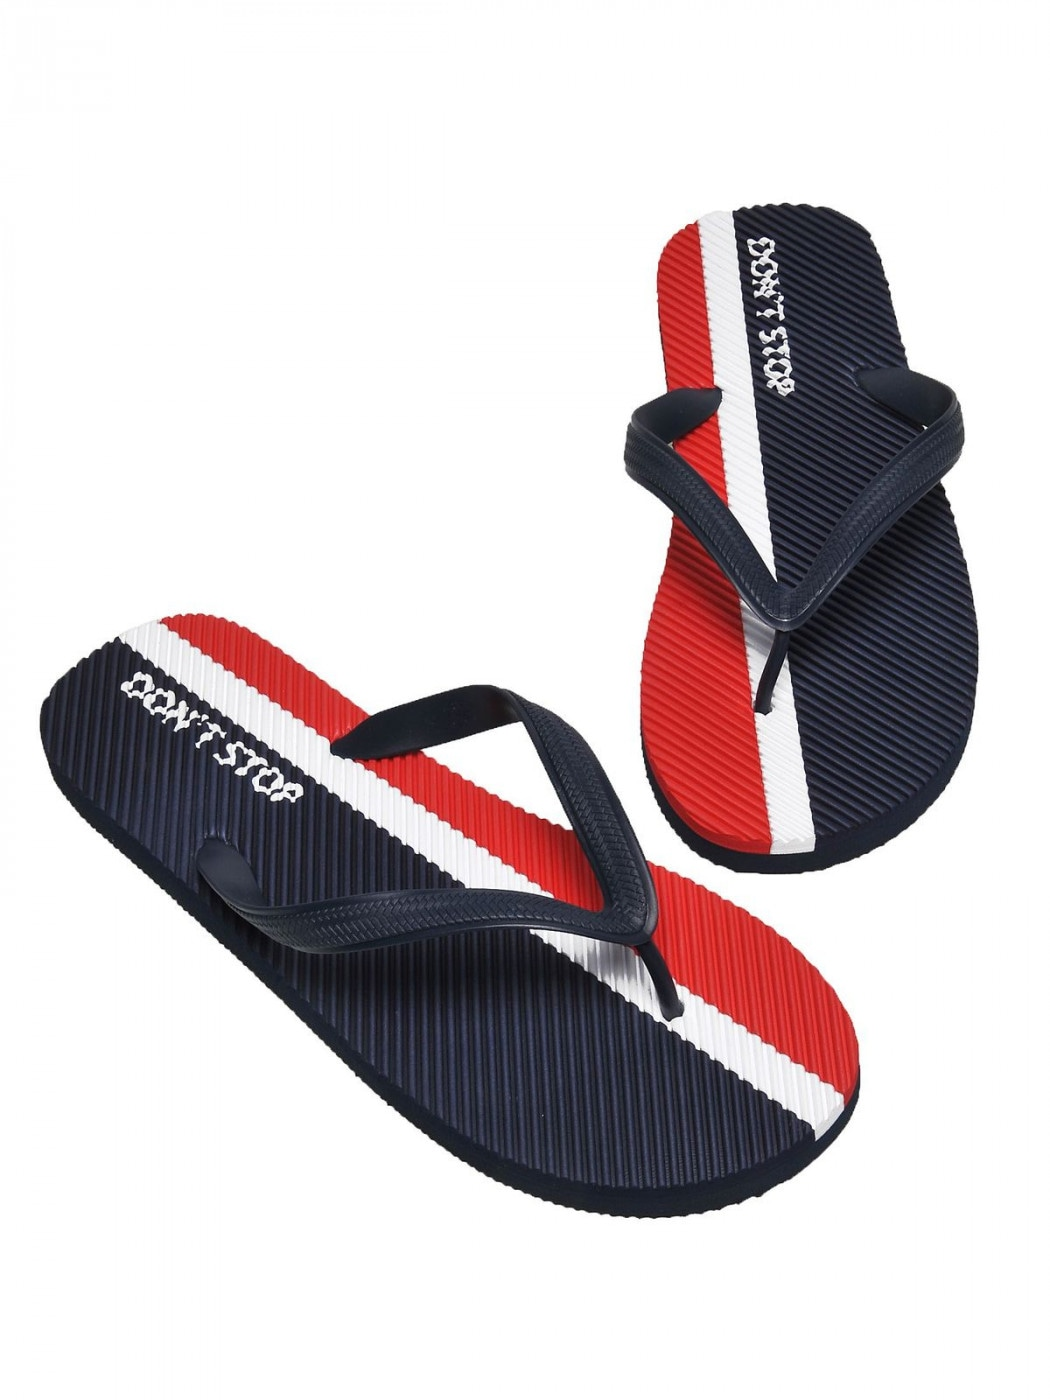 Men's flip flops Top Secret .